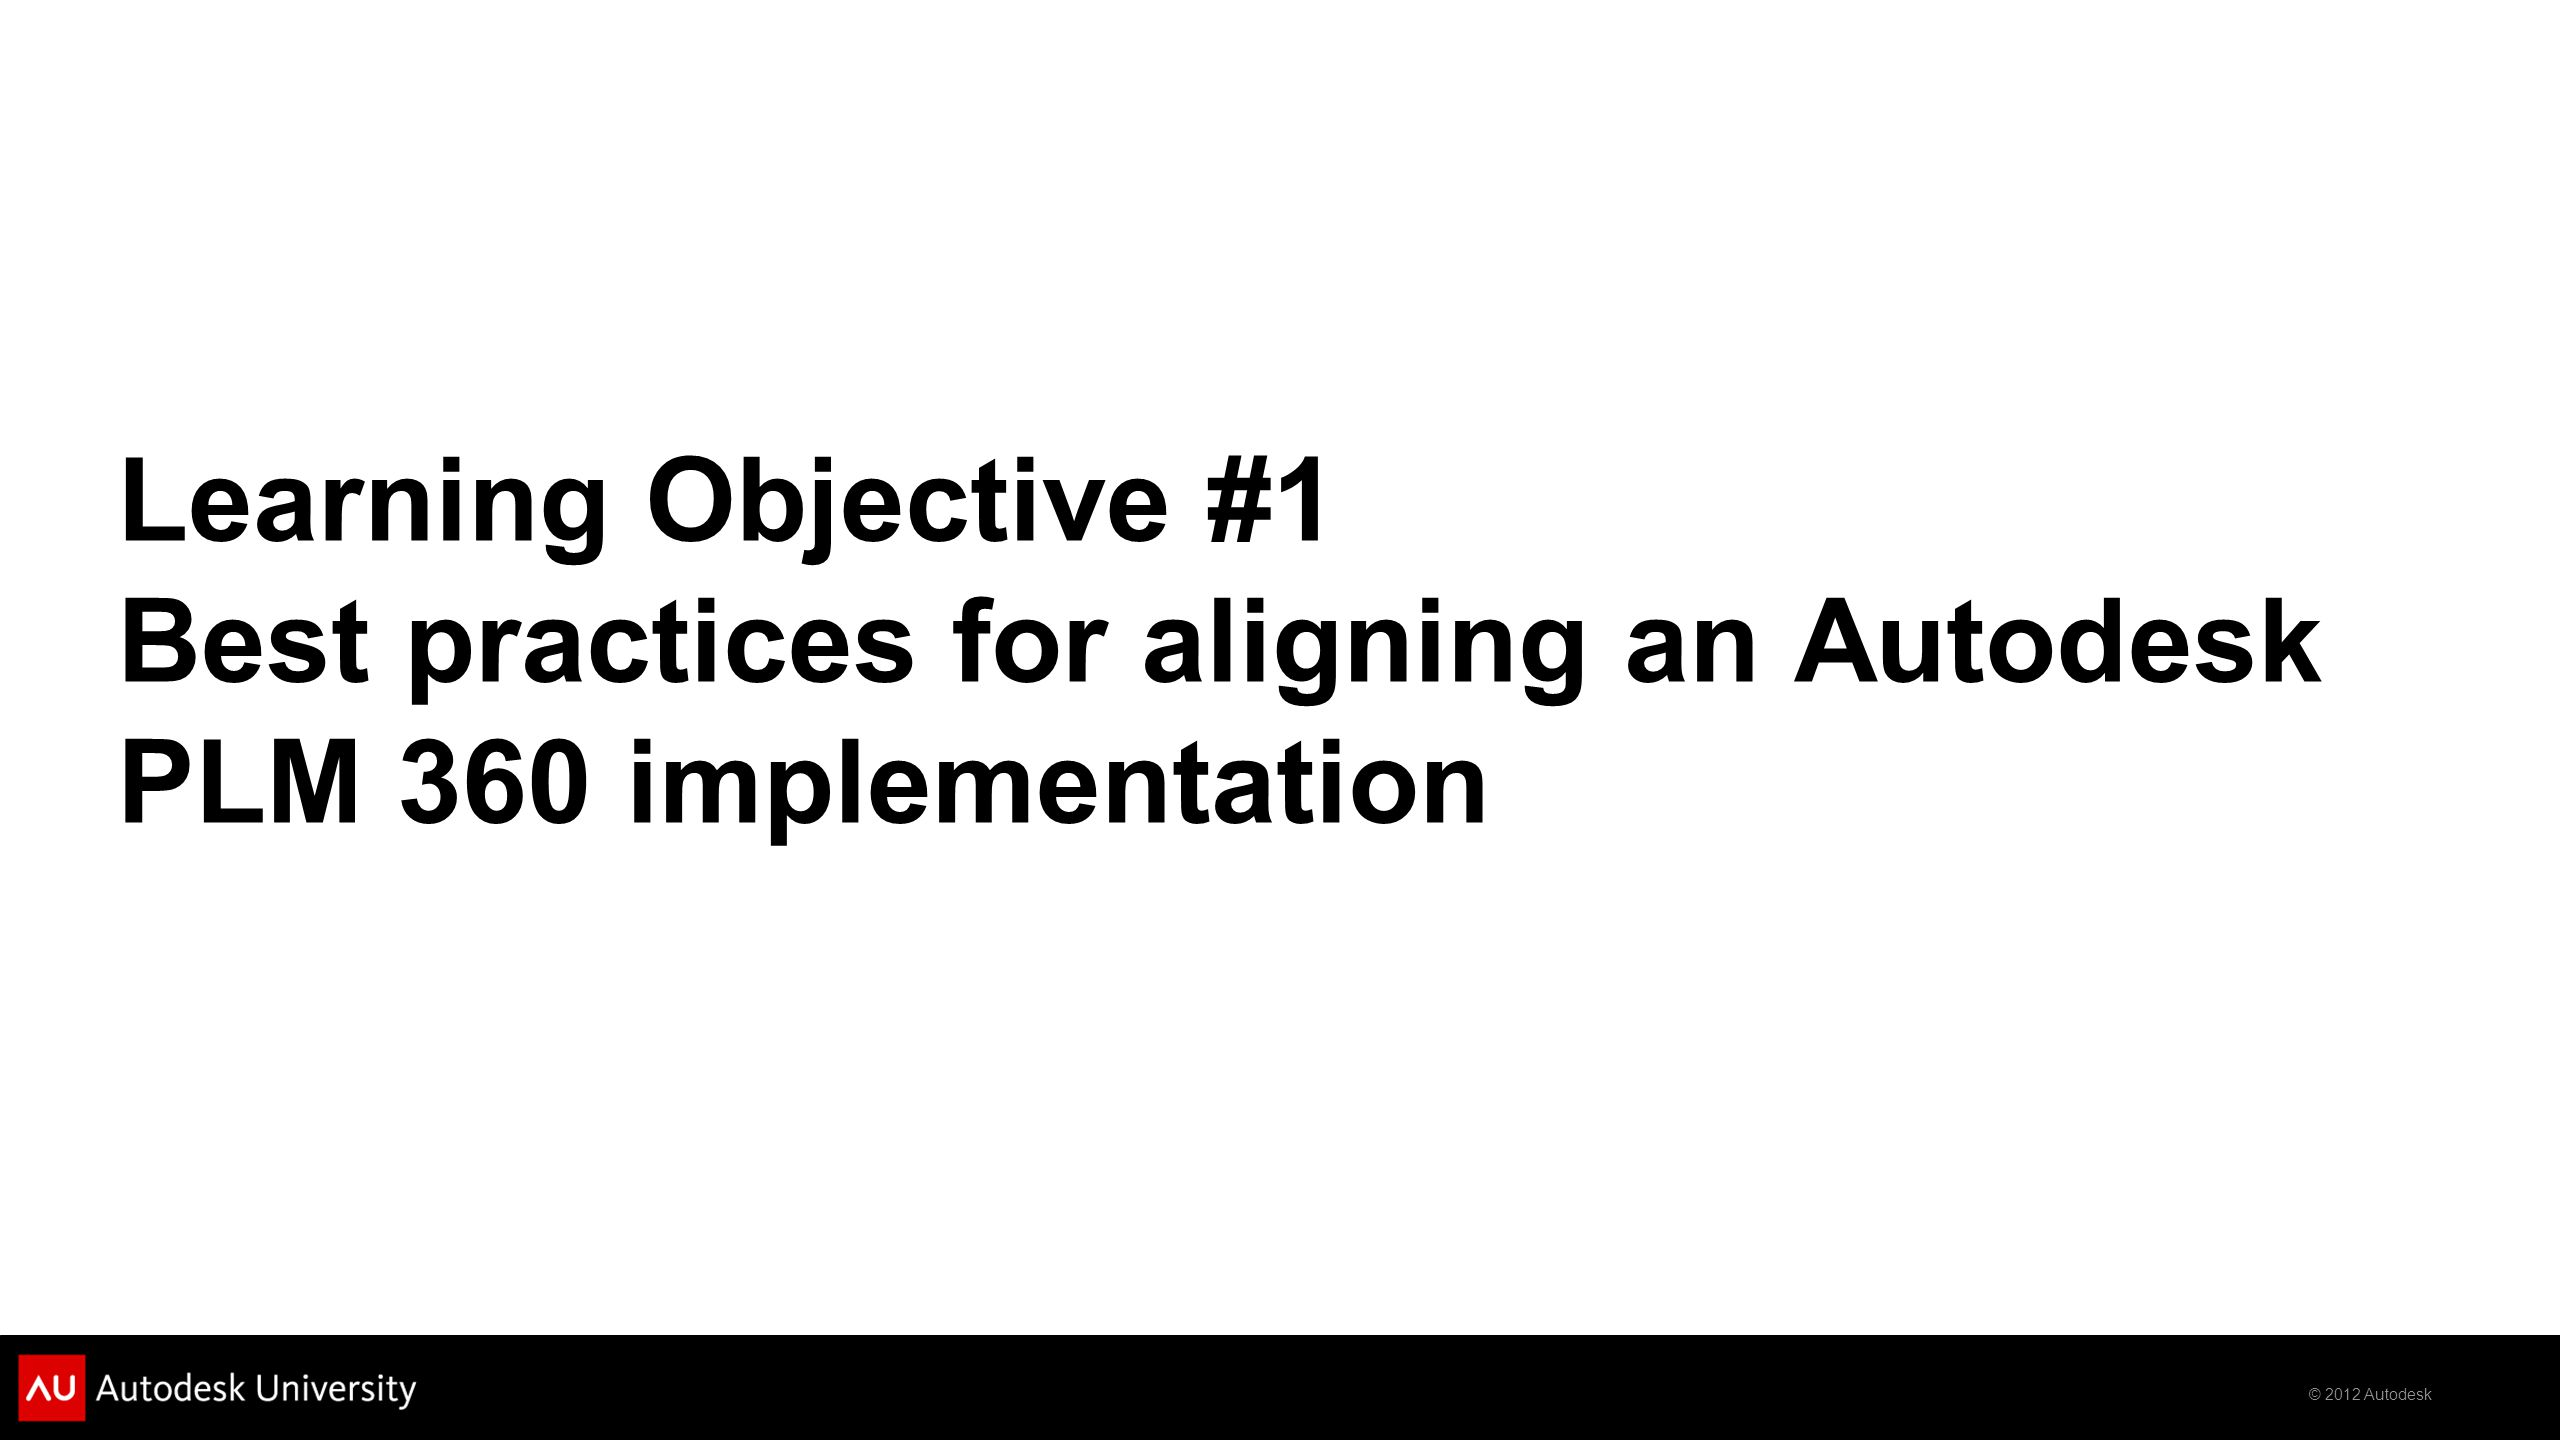 © 2012 Autodesk Learning Objective #1 Best practices for aligning an Autodesk PLM 360 implementation